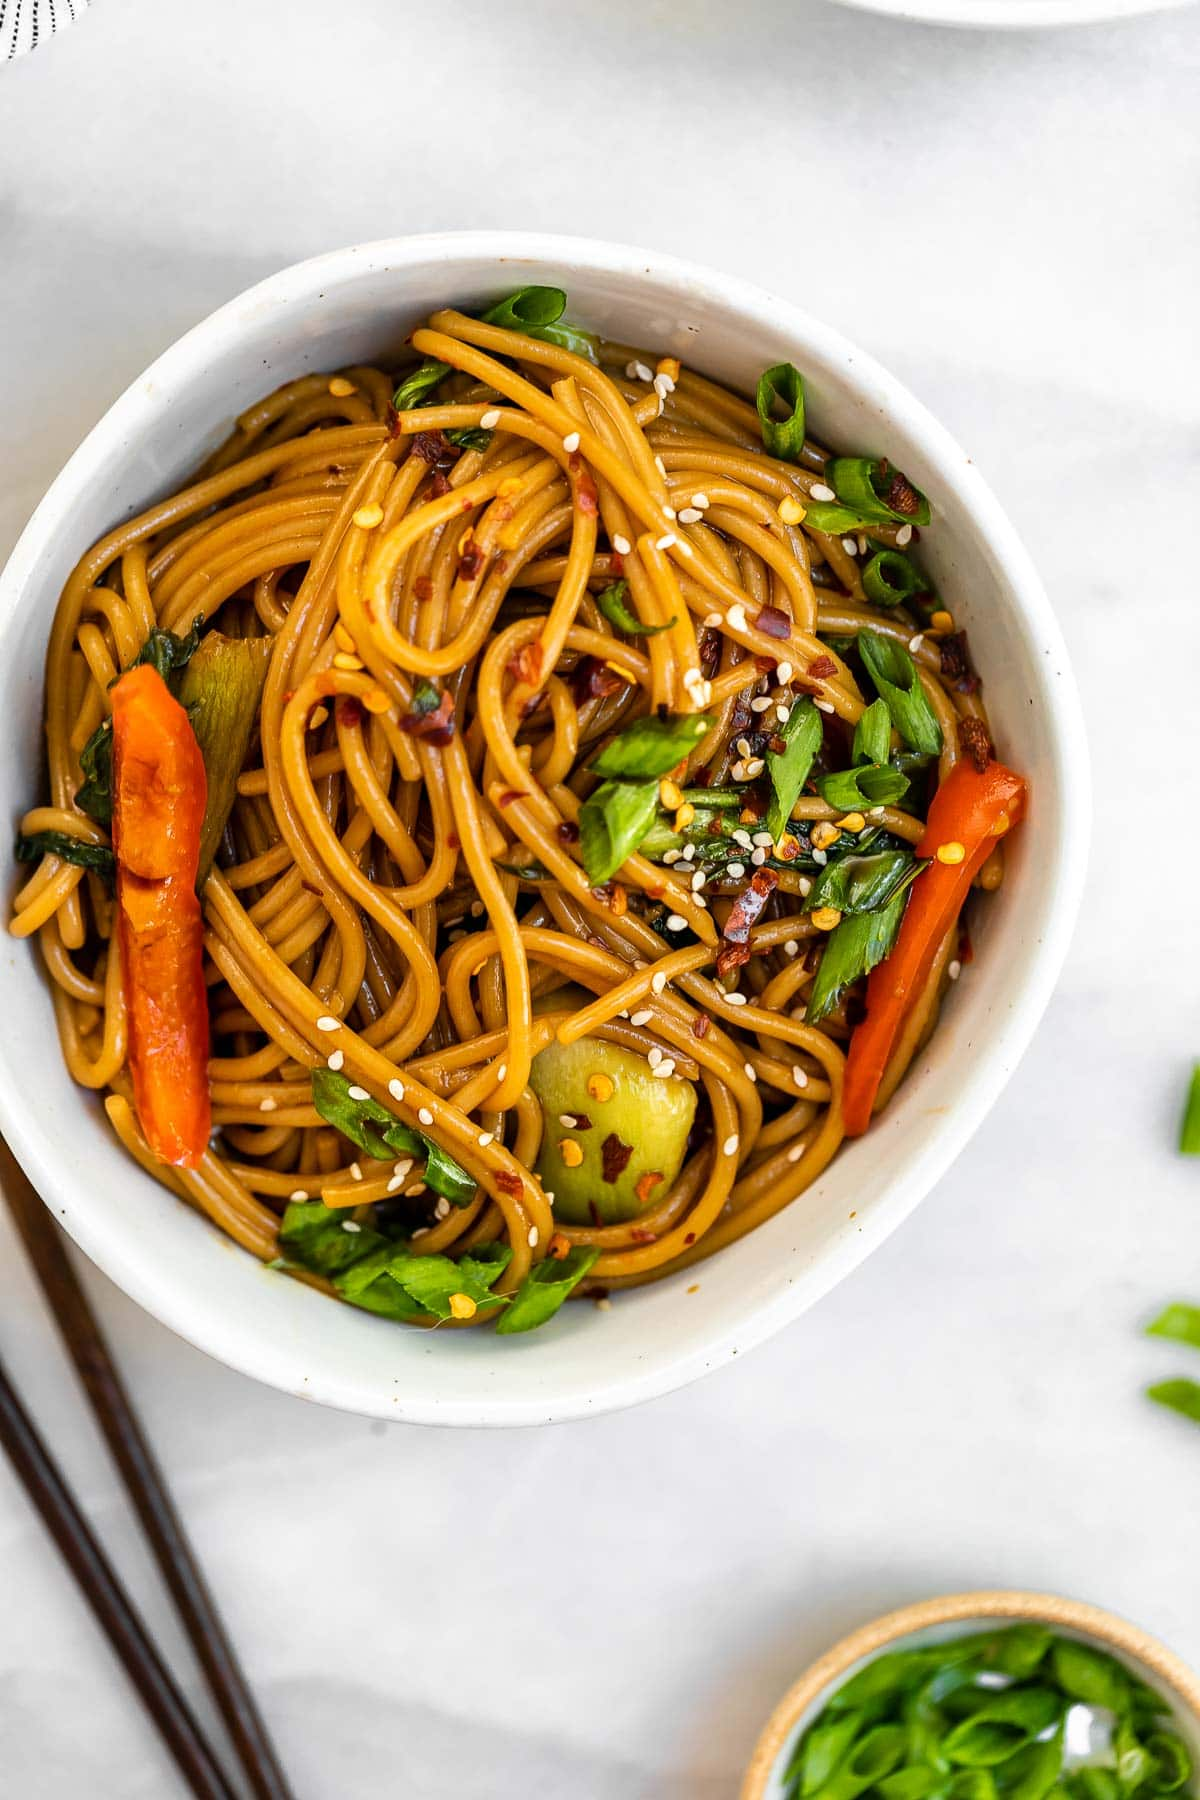 Teriyaki noodles with veggies in a small bowl.